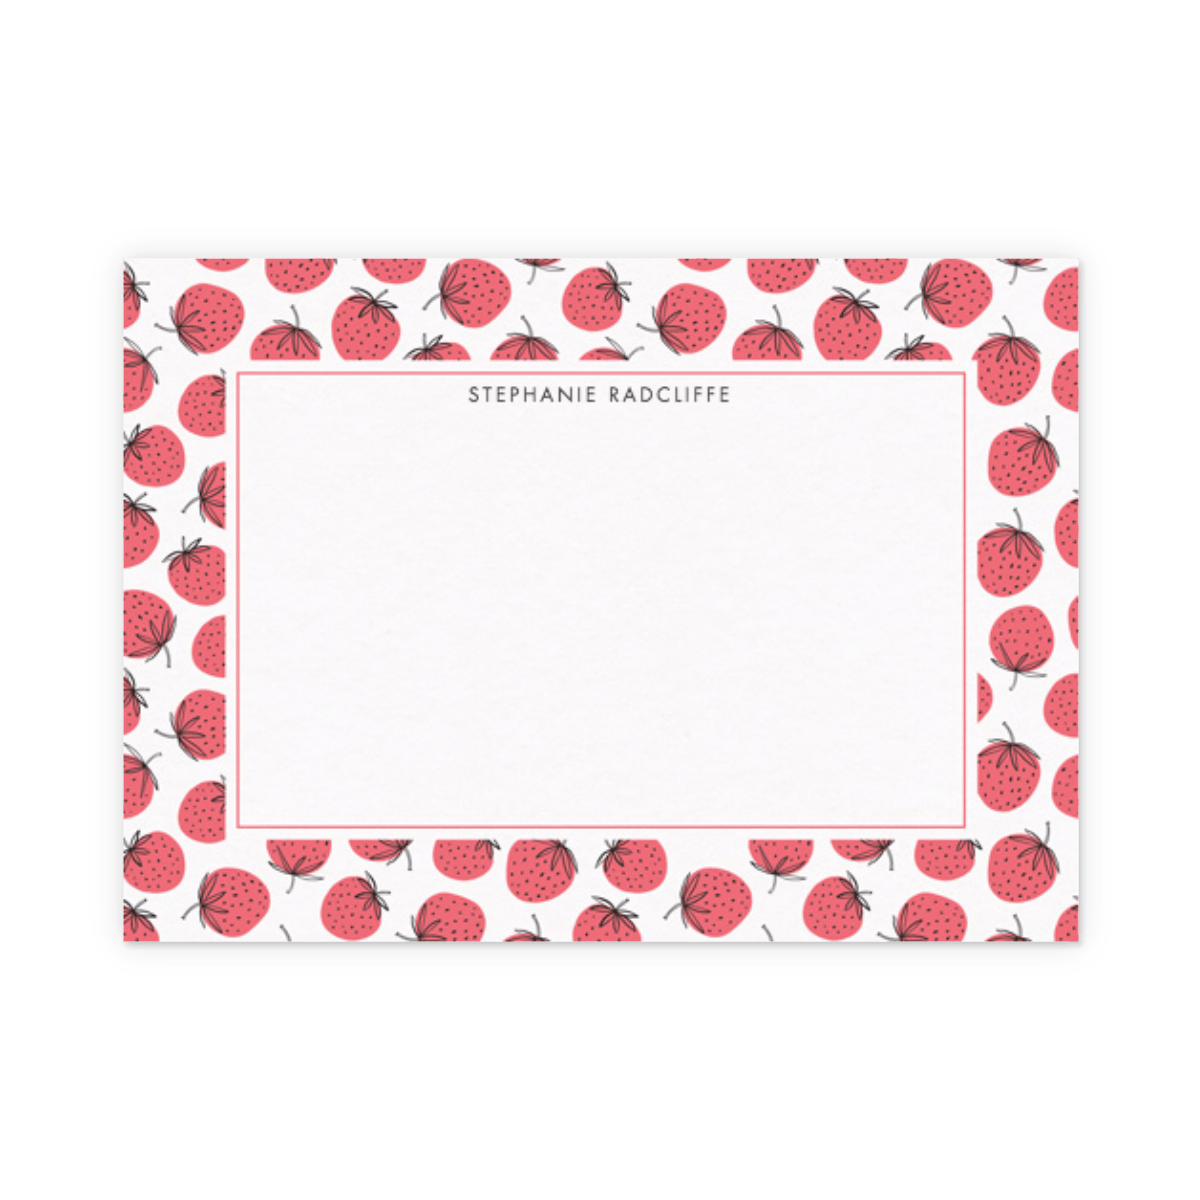 Https%3a%2f%2fwww.papier.com%2fproduct image%2f29359%2f10%2fstrawberries 7384 front 1508163241.png?ixlib=rb 1.1